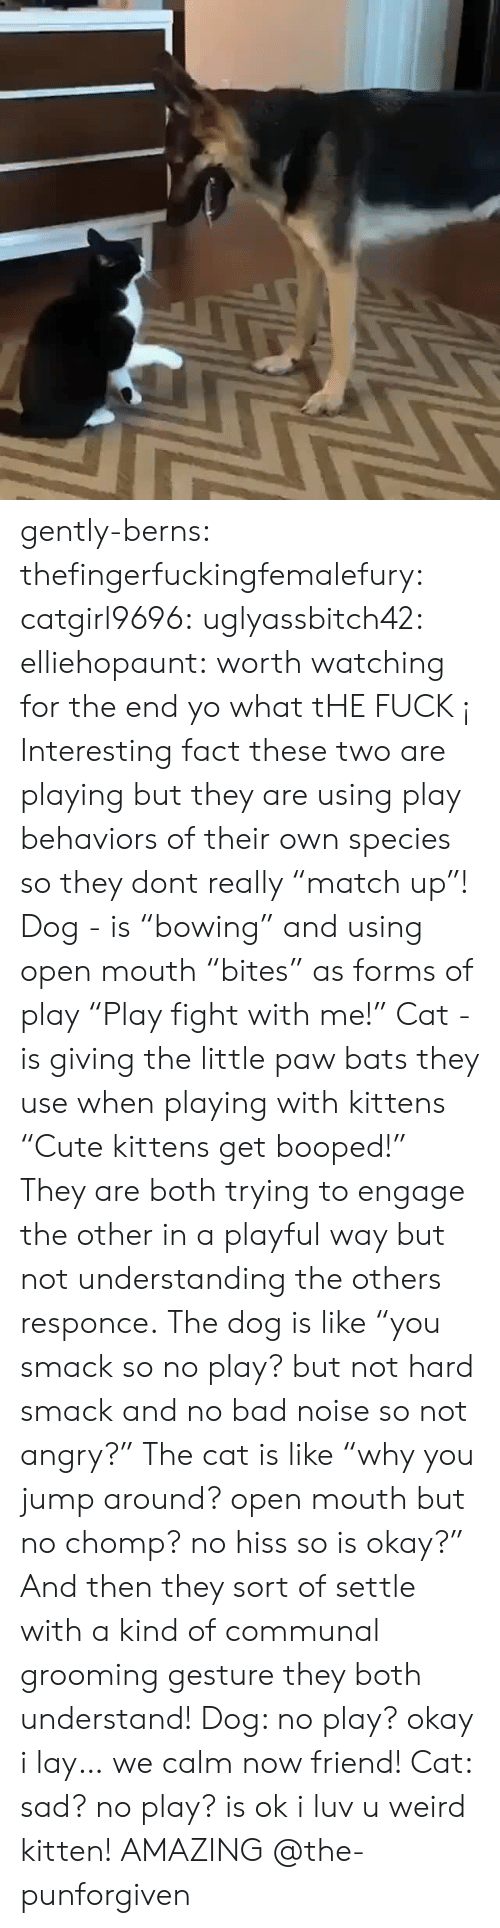 """chomp: gently-berns:  thefingerfuckingfemalefury:  catgirl9696:  uglyassbitch42:  elliehopaunt: worth watching for the end  yo what tHE FUCK ¡   Interesting fact these two are playing but they are using play behaviors of their own species so they dont really """"match up""""! Dog - is """"bowing"""" and using open mouth """"bites"""" as forms of play  """"Play fight with me!"""" Cat - is giving the little paw bats they use when playing with kittens """"Cute kittens get booped!"""" They are both trying to engage the other in a playful way but not understanding the others responce. The dog is like """"you smack so no play? but not hard smack and no bad noise so not angry?"""" The cat is like """"why you jump around? open mouth but no chomp? no hiss so is okay?"""" And then they sort of settle with a kind of communal grooming gesture they both understand! Dog: no play? okay i lay… we calm now friend! Cat: sad? no play? is ok i luv u weird kitten!   AMAZING @the-punforgiven"""